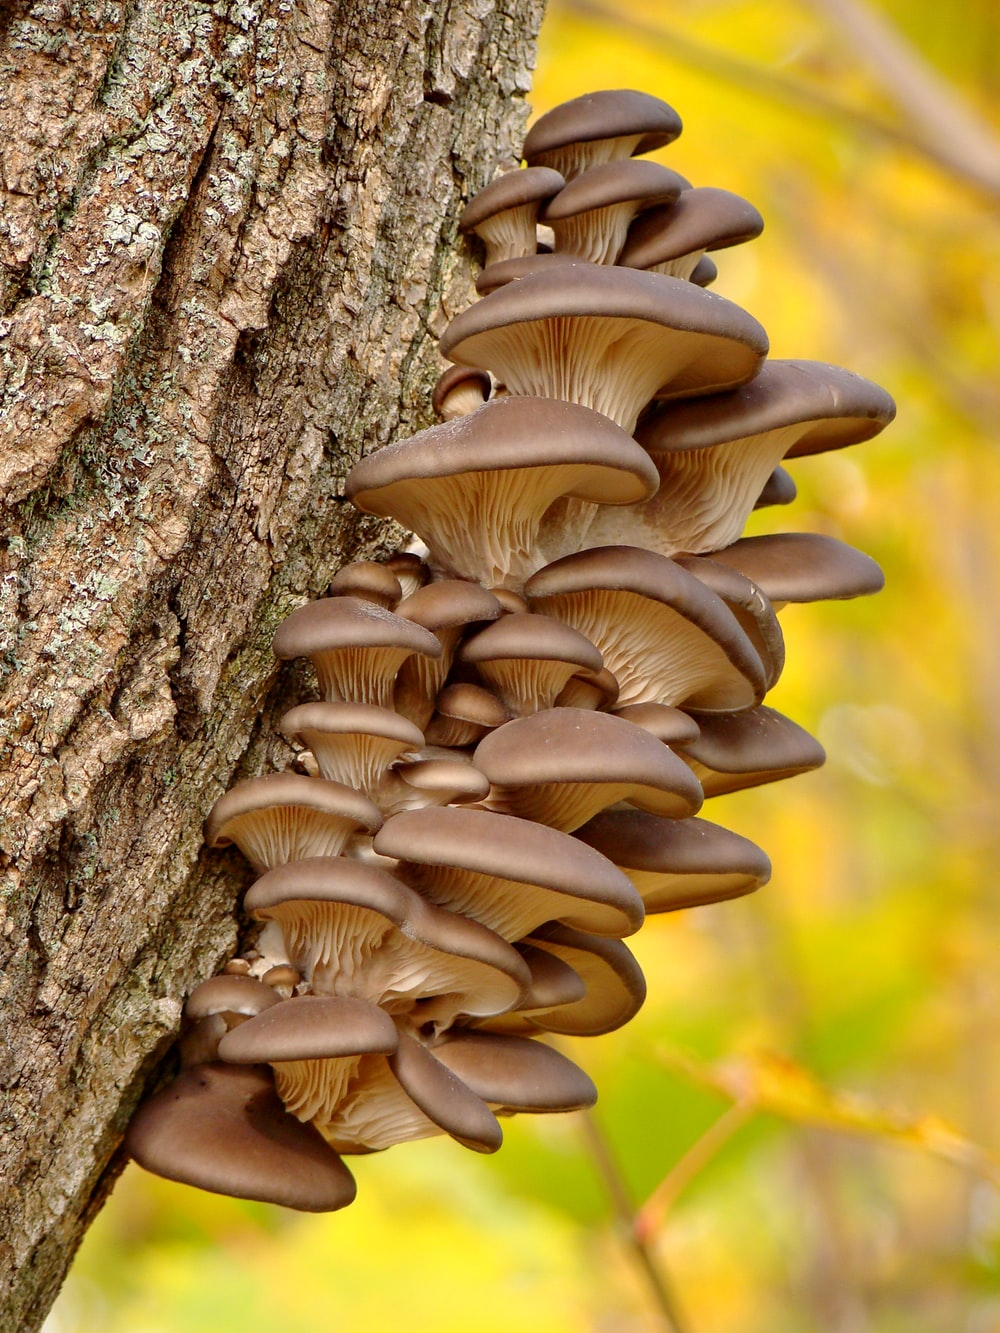 brown mushroom on brown tree trunk